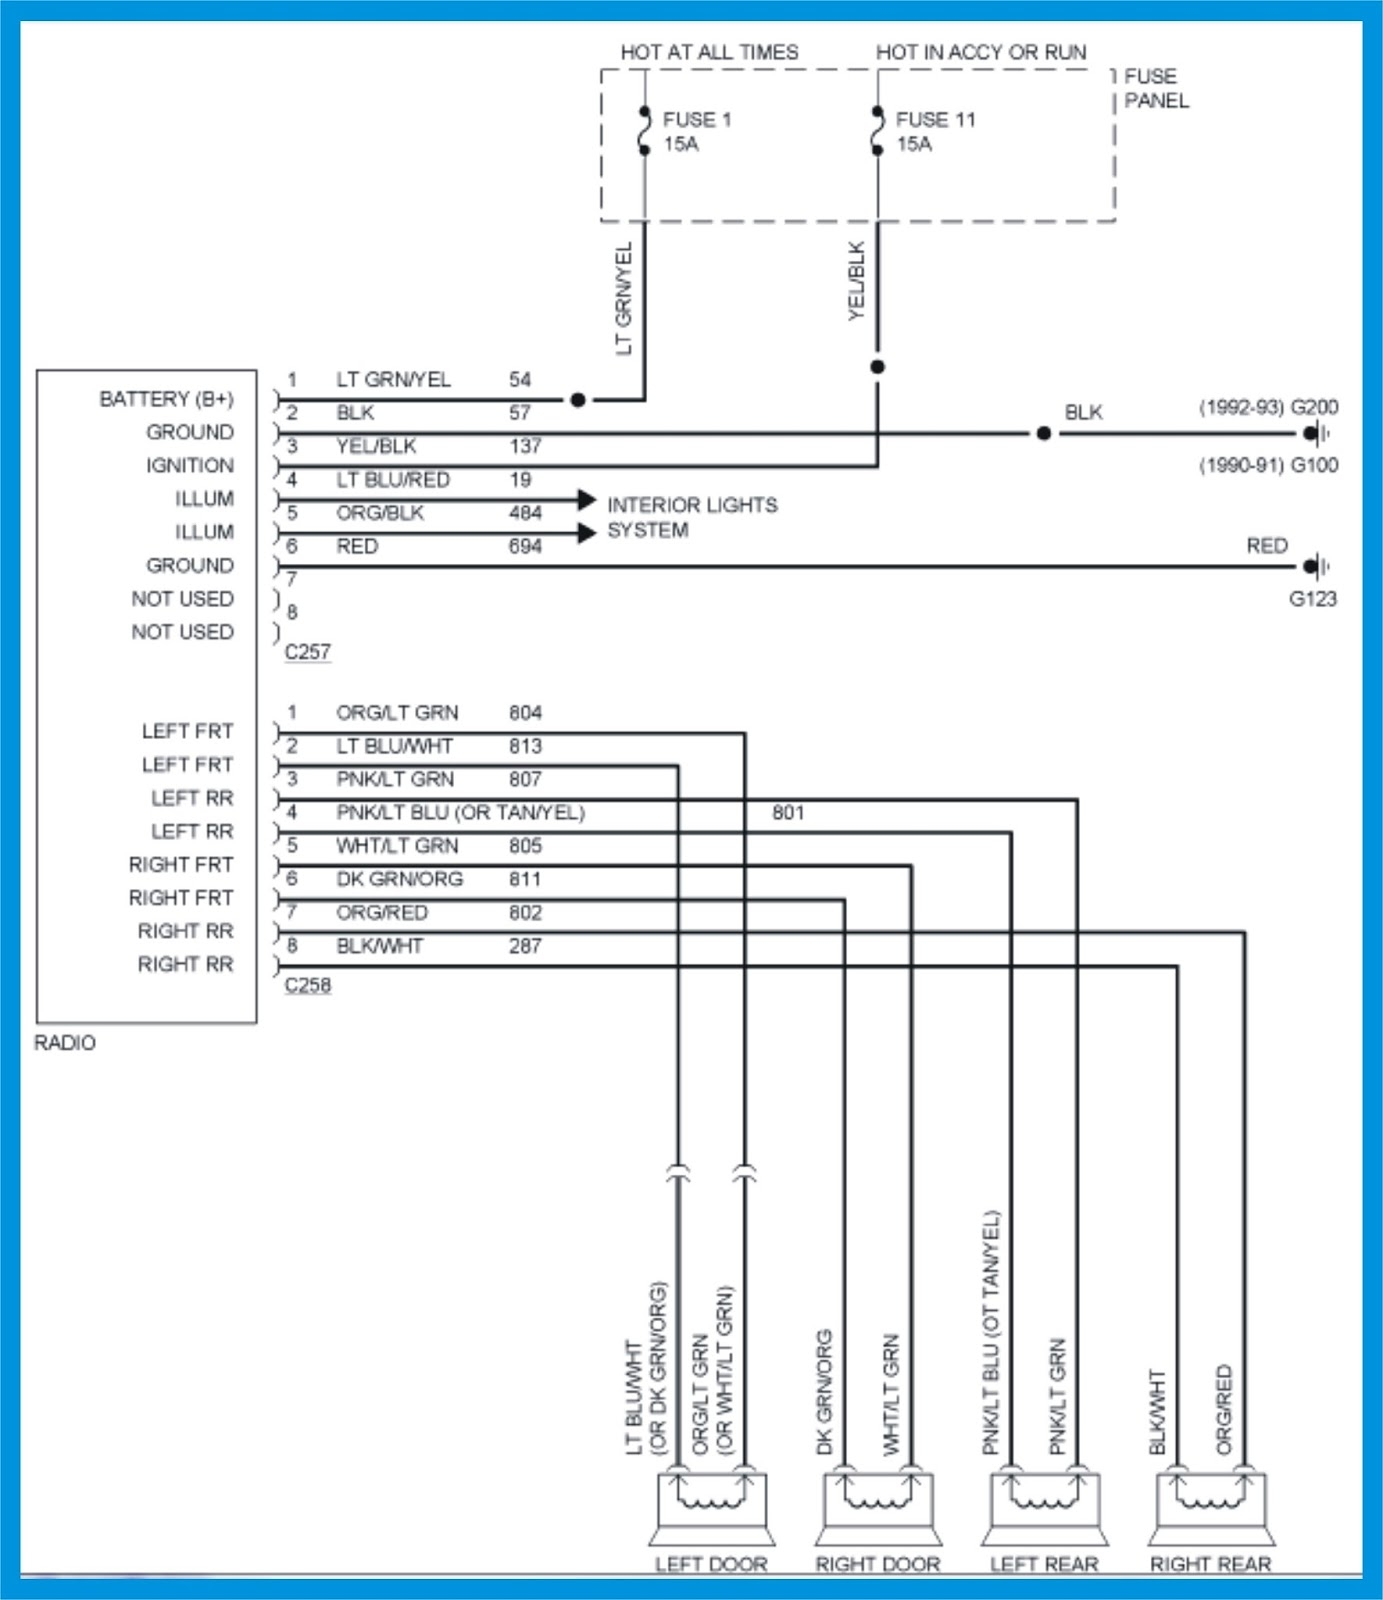 2004 ford explorer stereo wiring diagram 2000 ford explorer radio wiring diagram | free wiring diagram